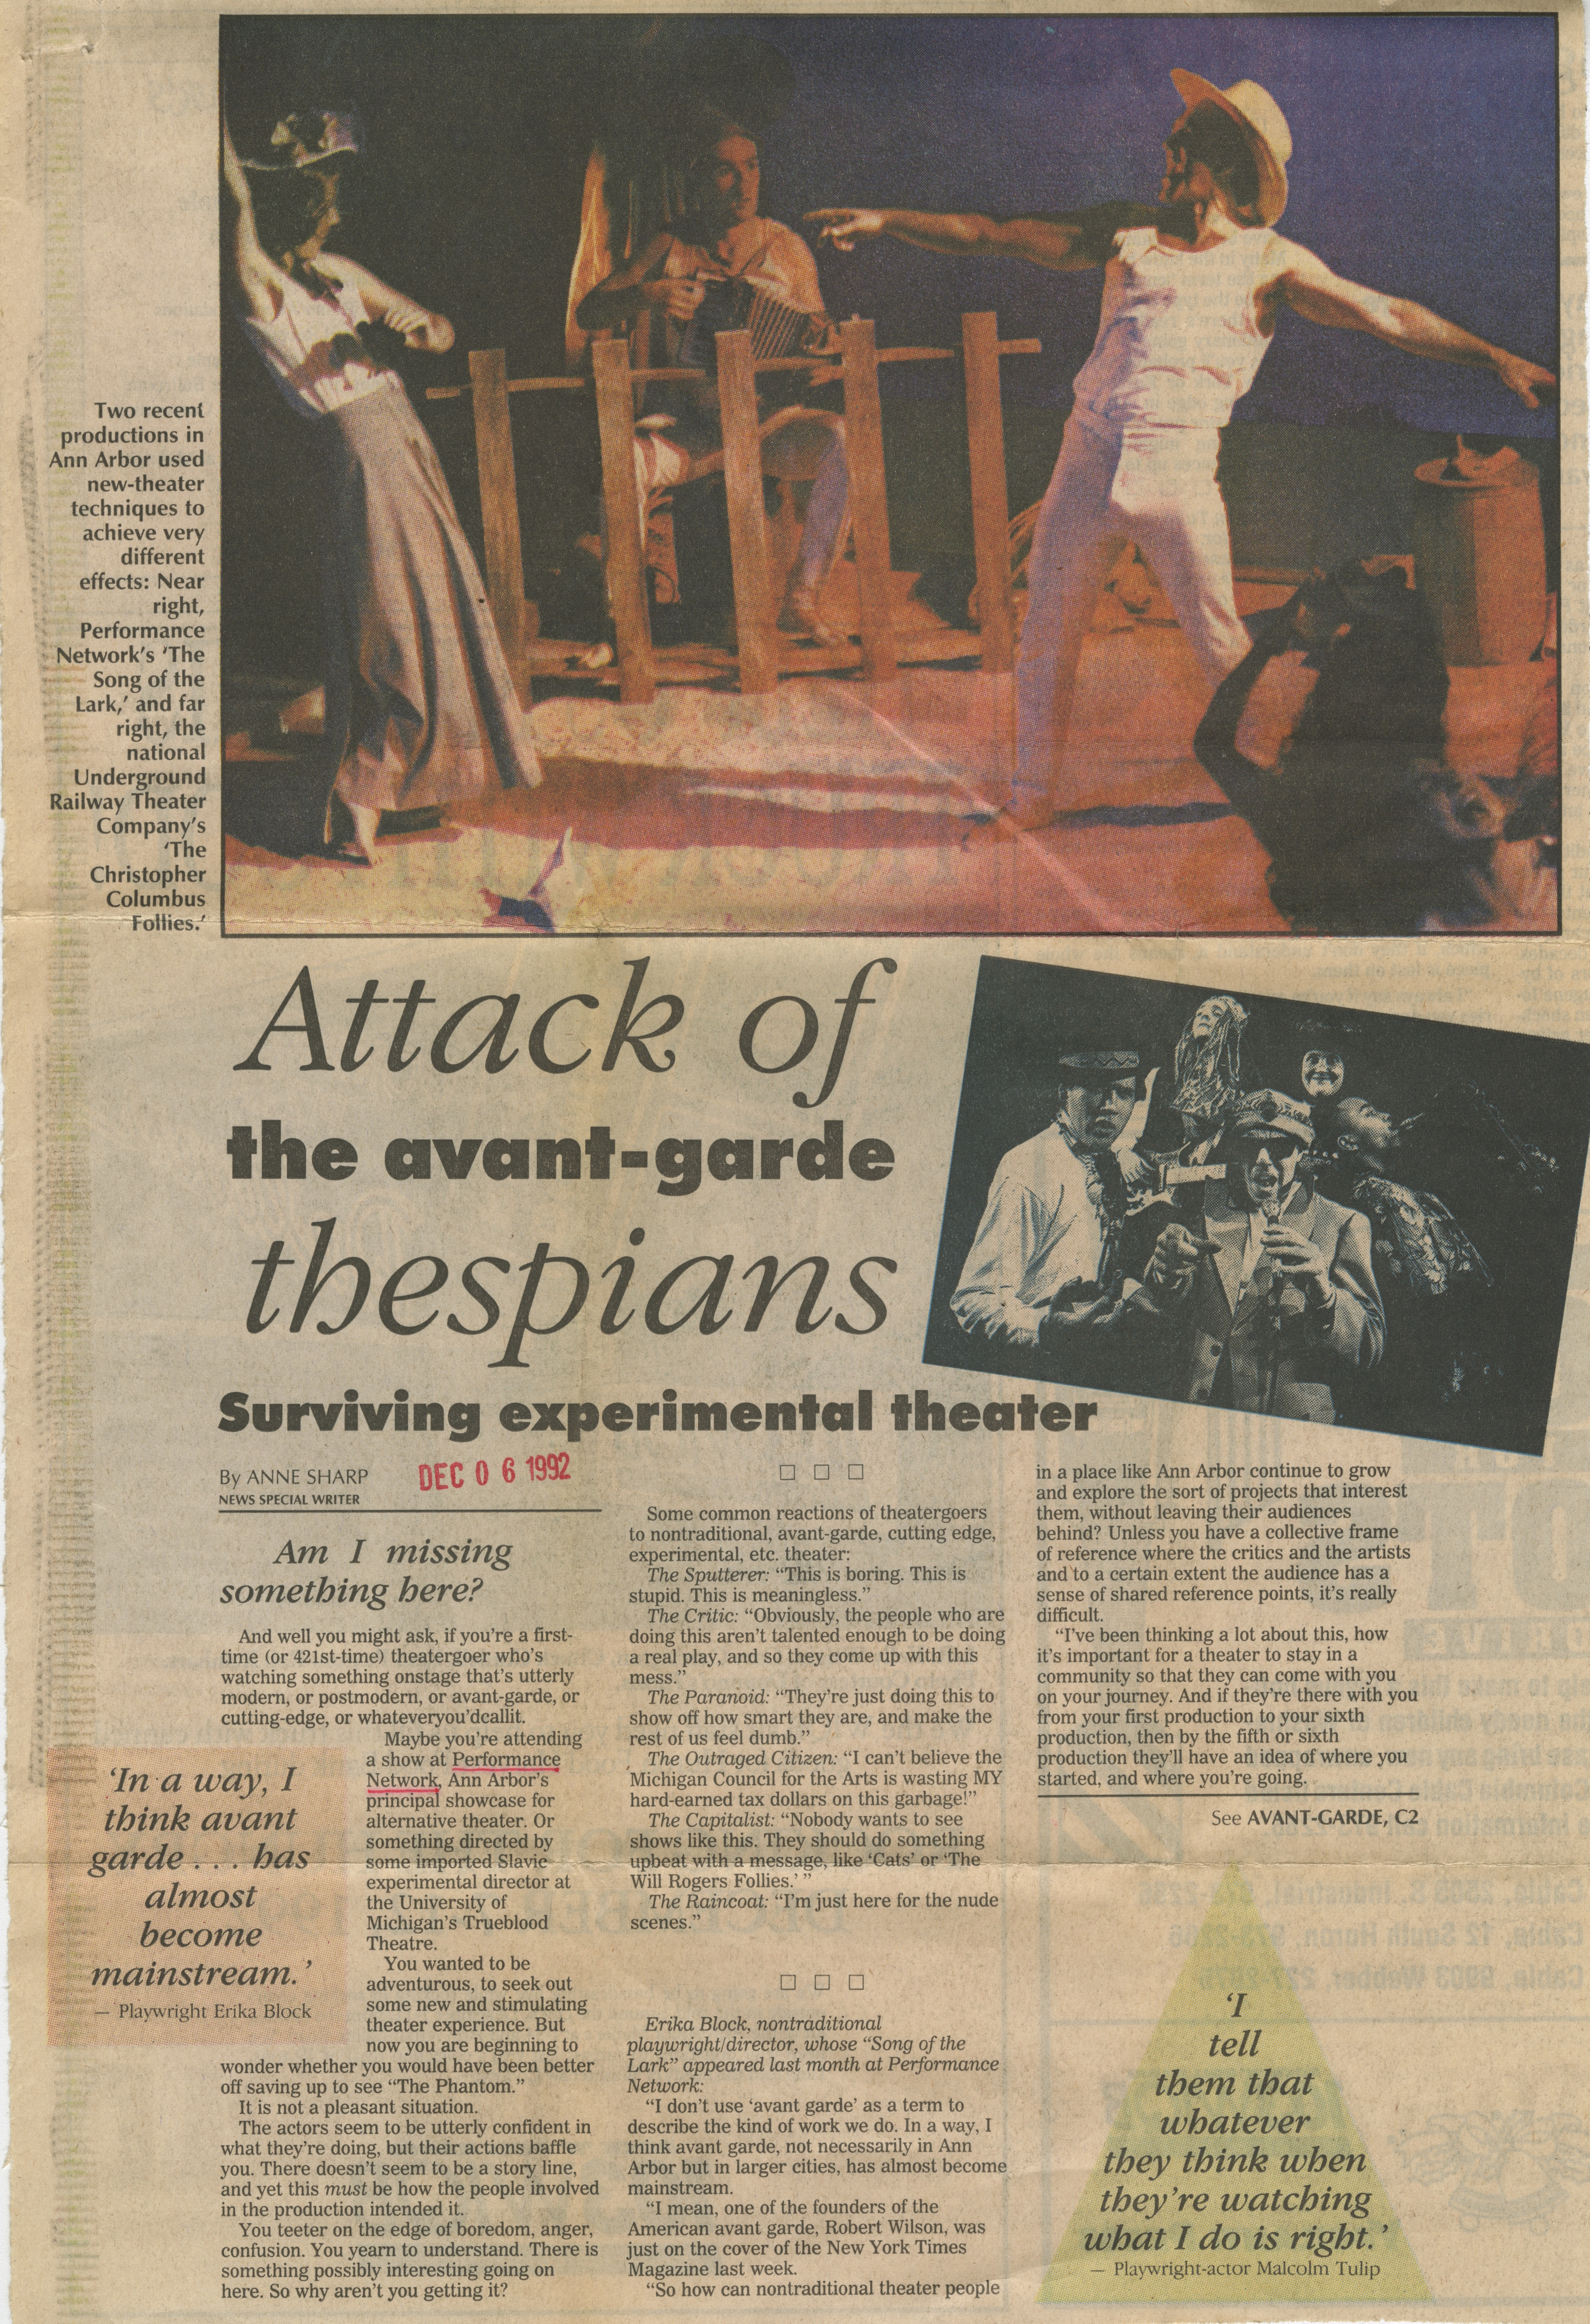 Attack of the avent-garde thespians: Surviving experimental theater image